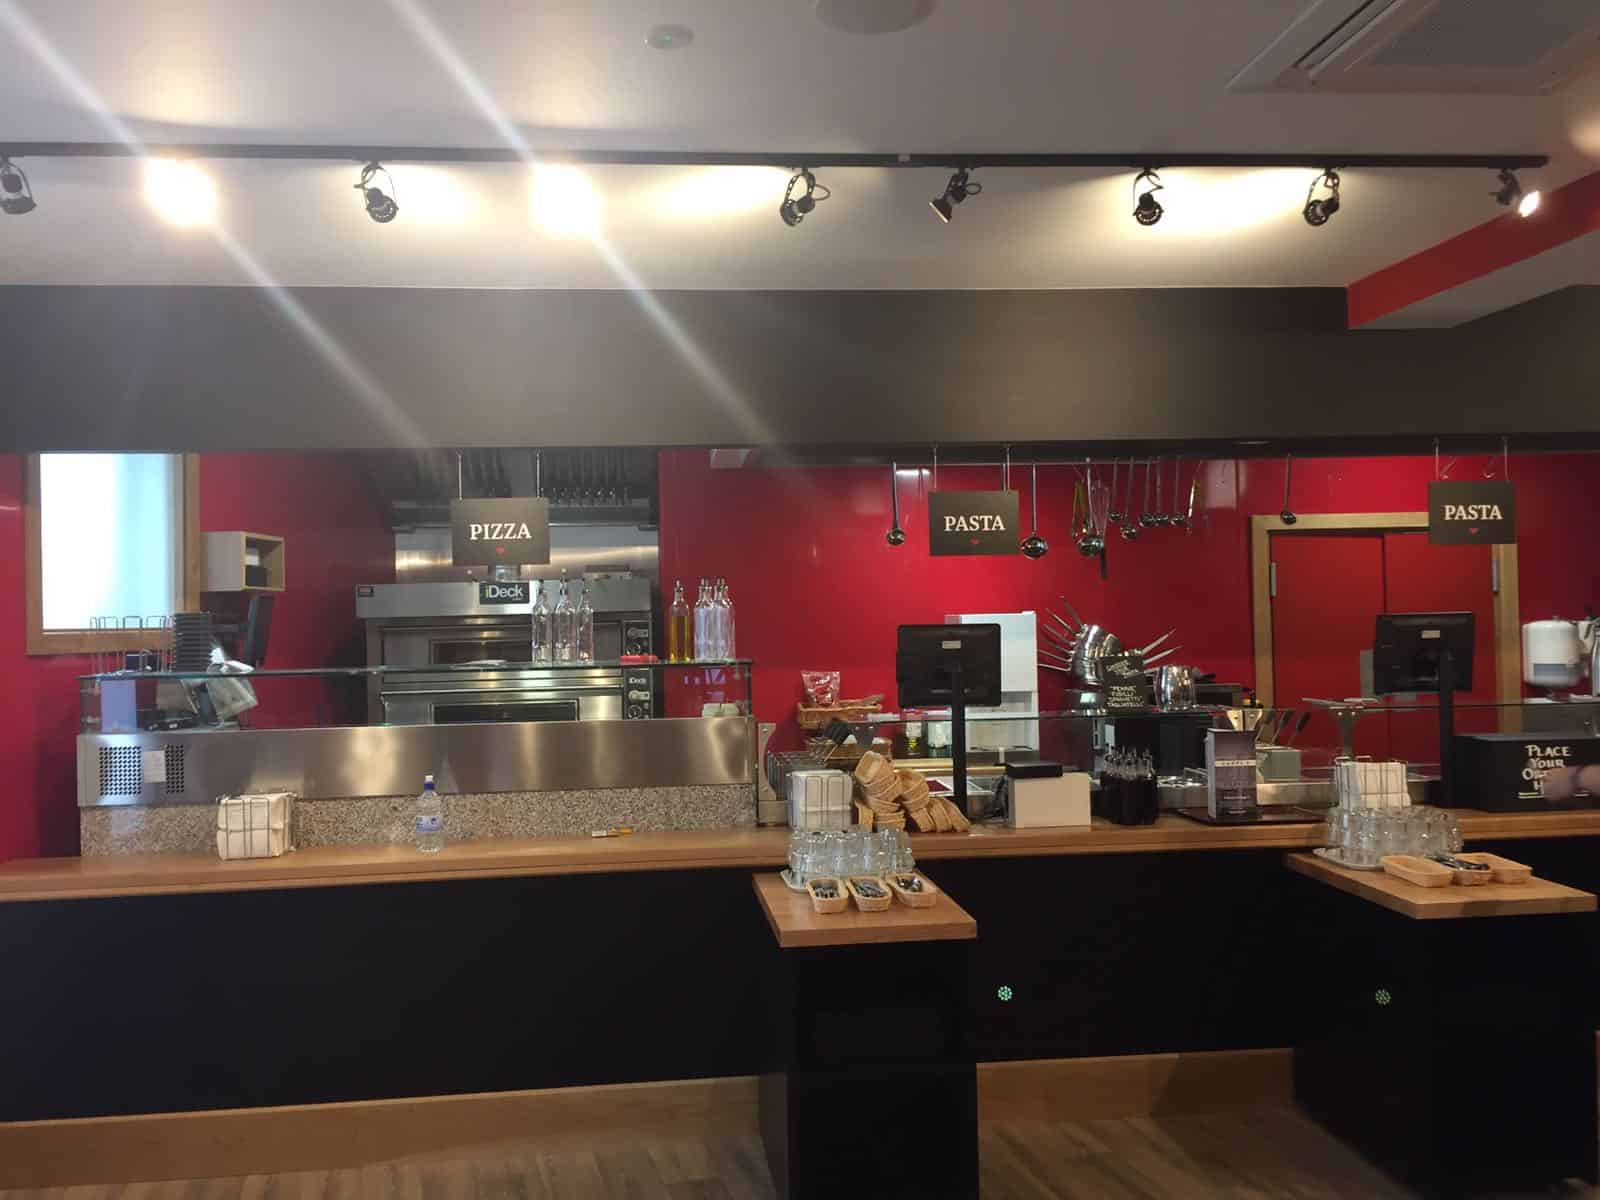 Martin Food Equipment b05946ba-fb86-4508-9d1f-f711c898507d NEW ITALIAN RESTAURANT INSTALLATION IN GALWAY News